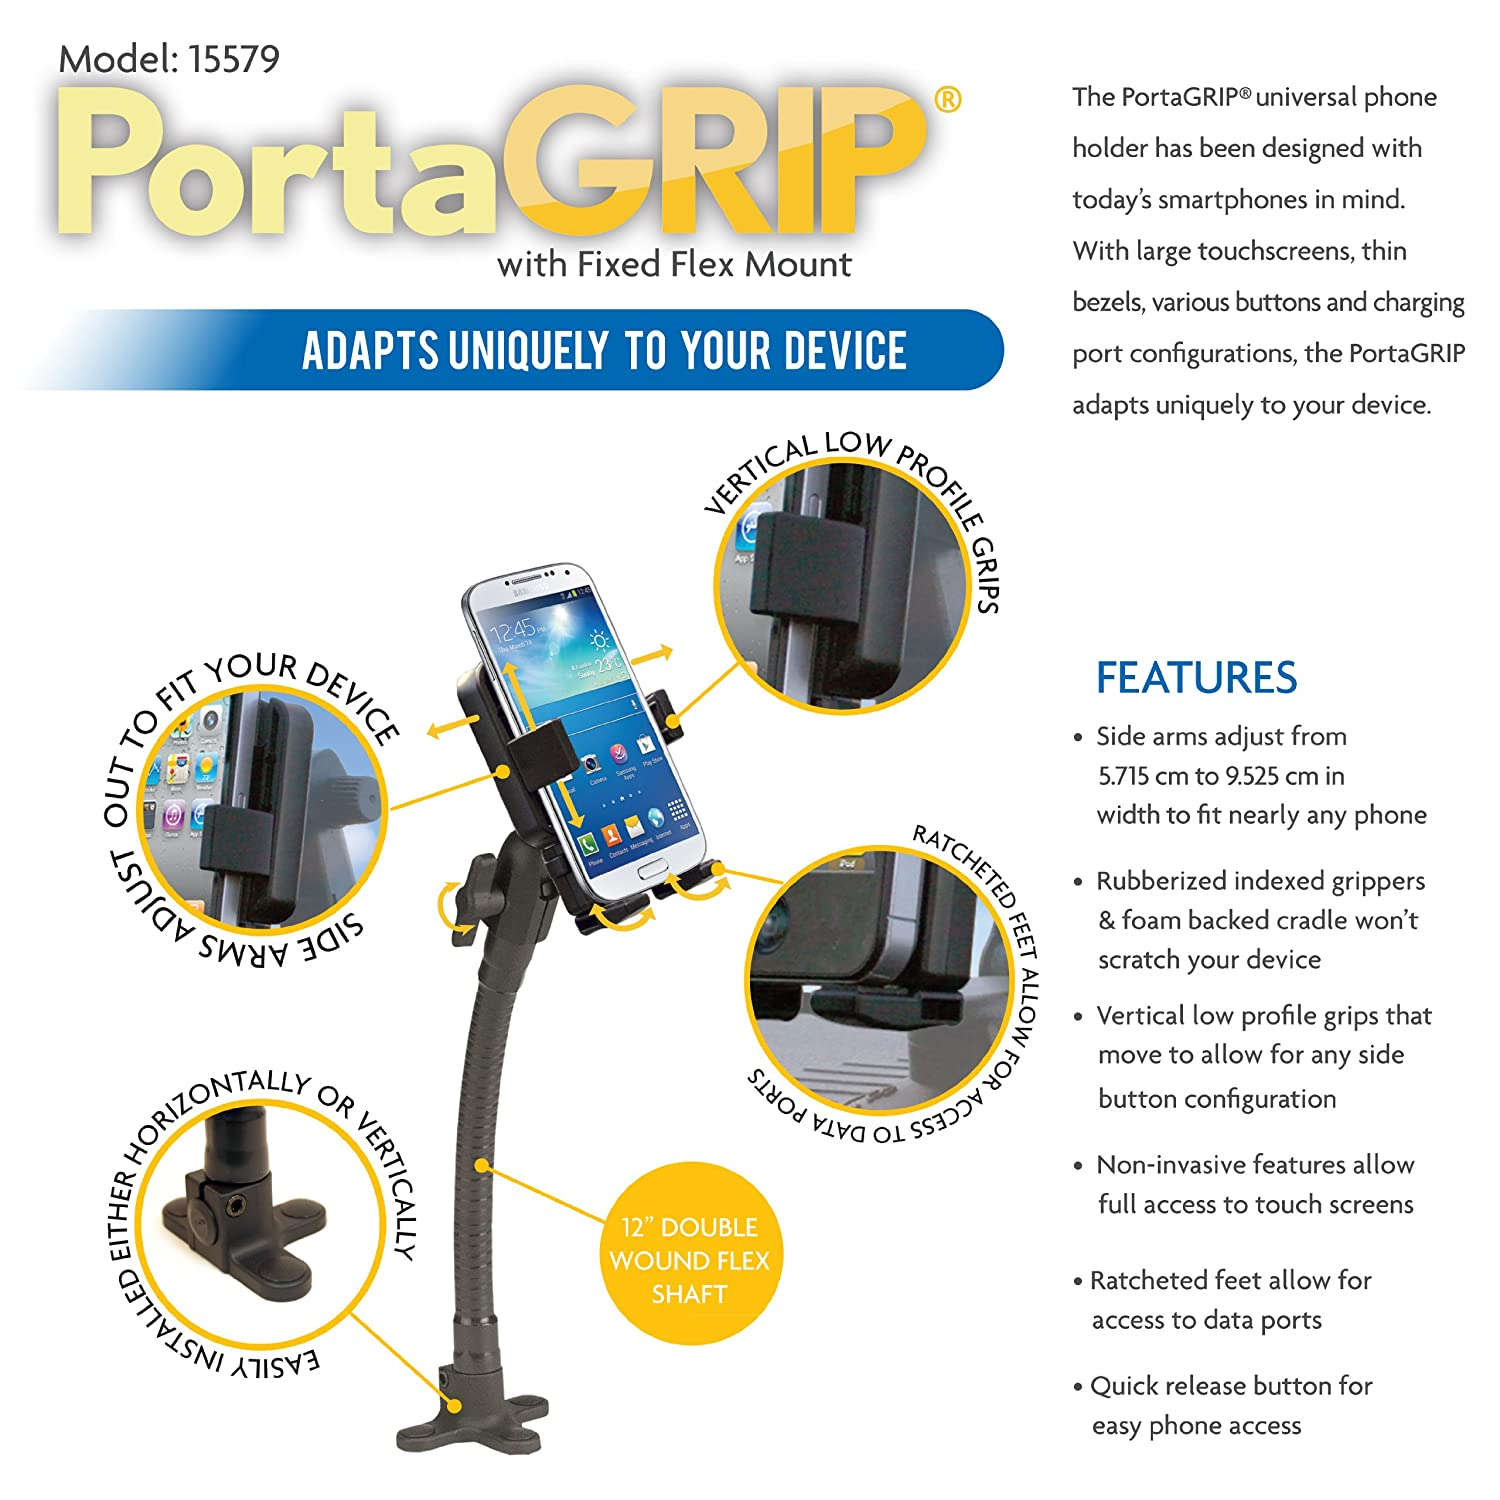 Panavise PortaGrip Phone Holder with 797-12 Uniflex Mount 15579